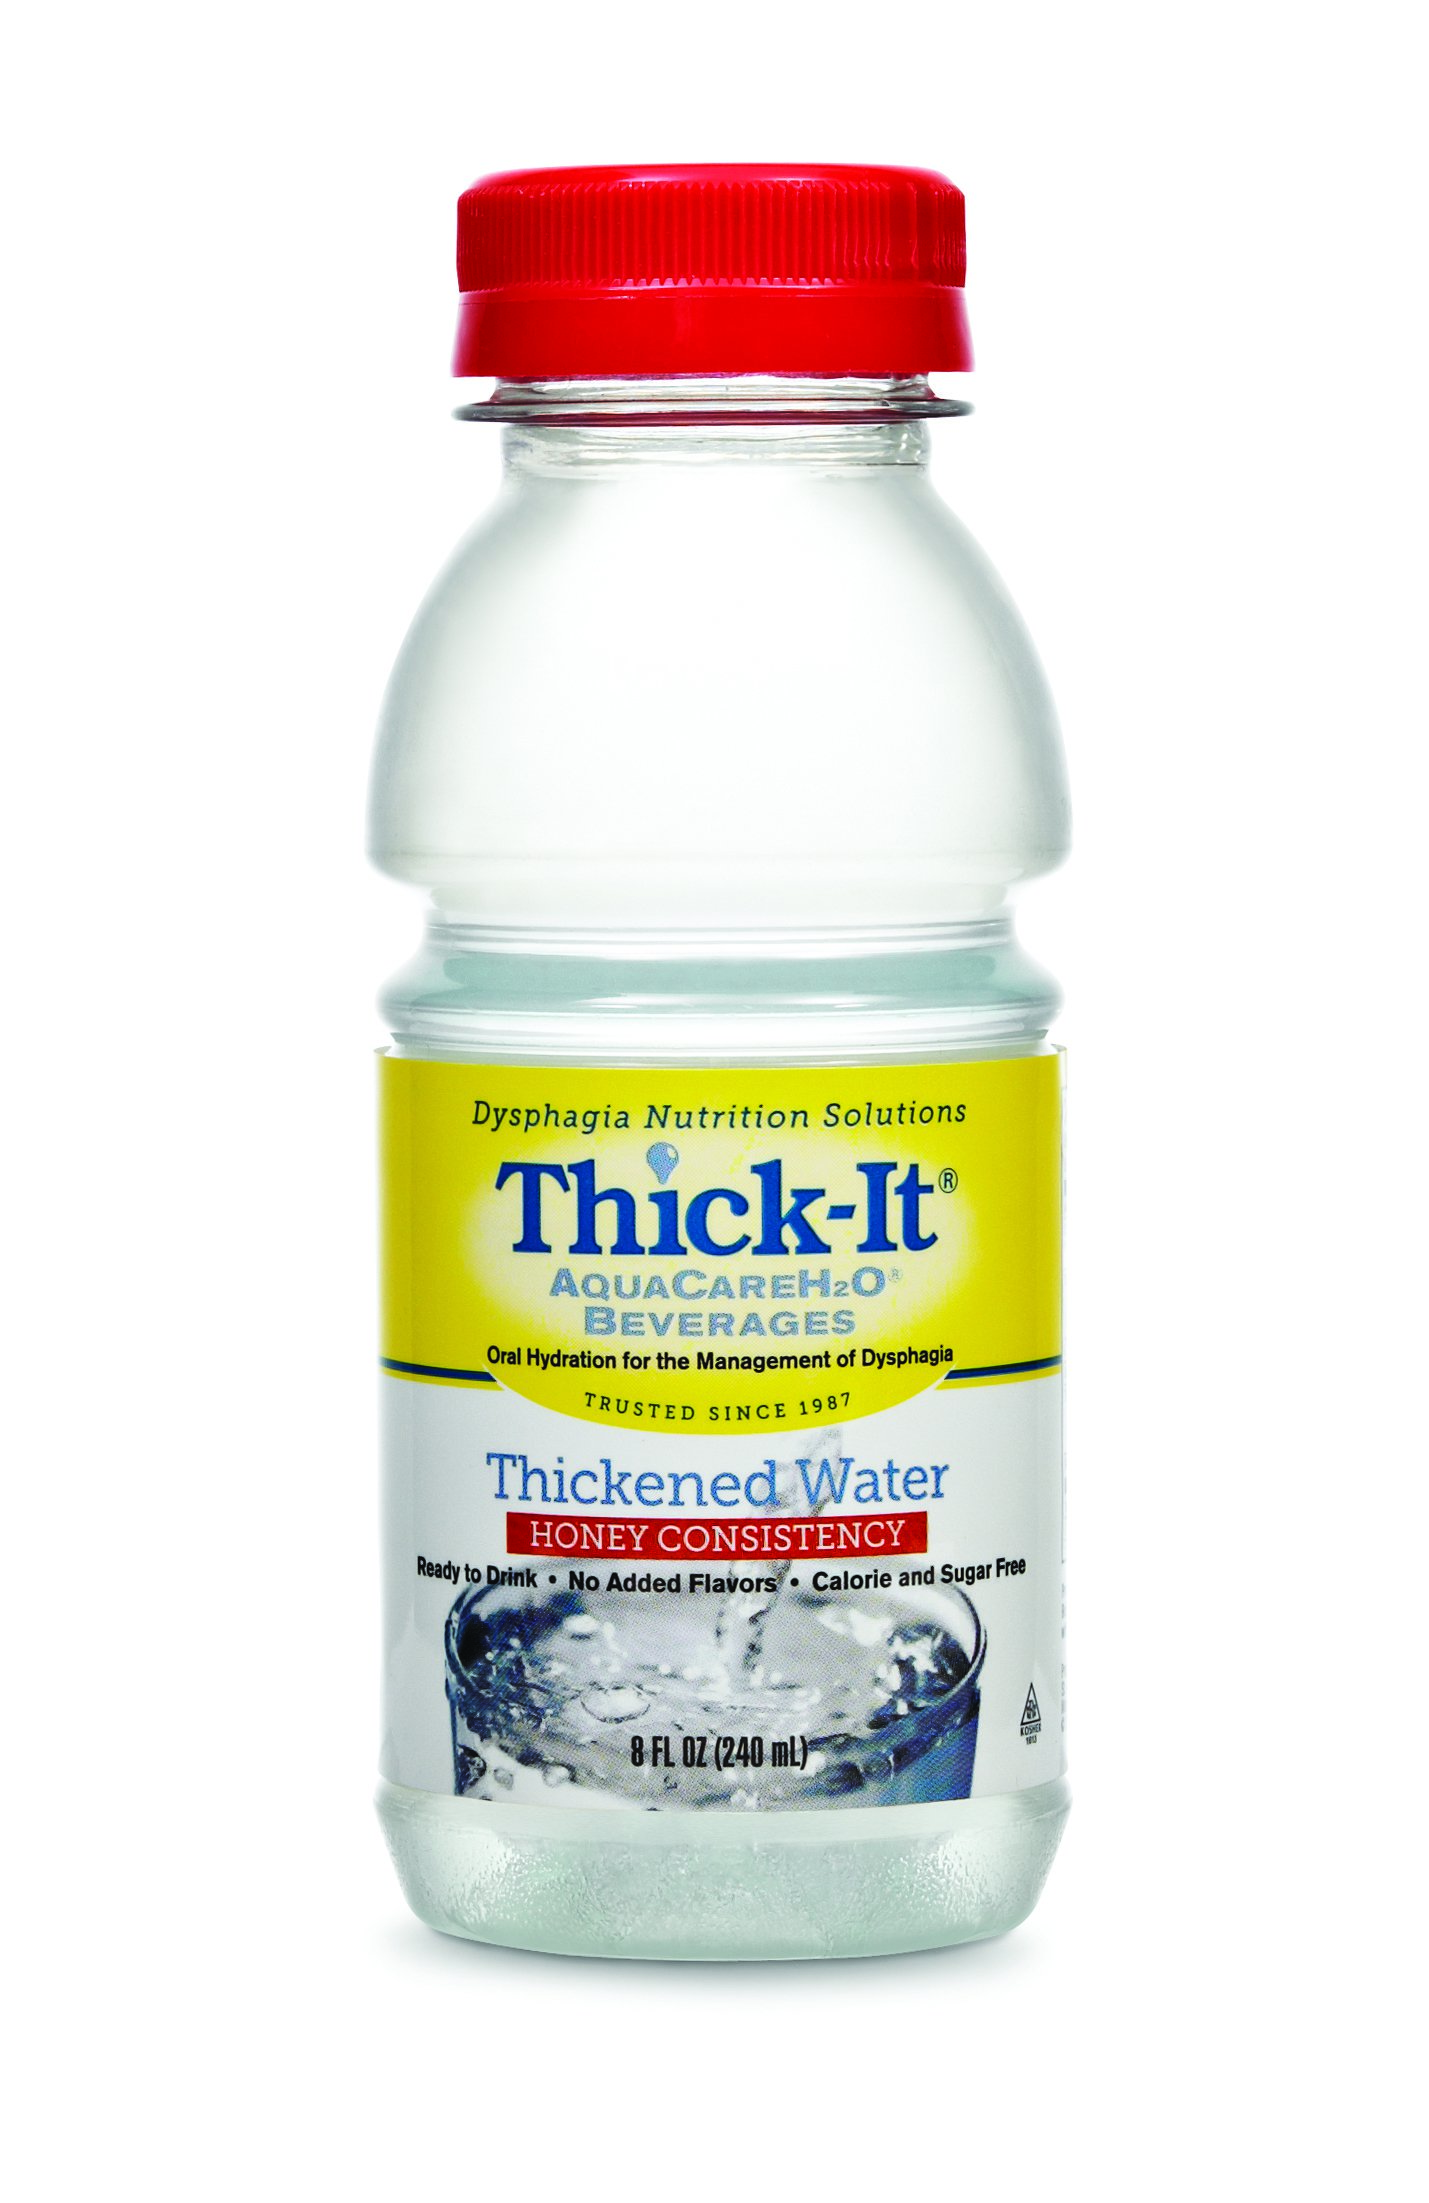 Image Of Thickened Water Thick-It AquaCareH2O 8 oz Bottle Unflavored Ready to Use Honey Consistency